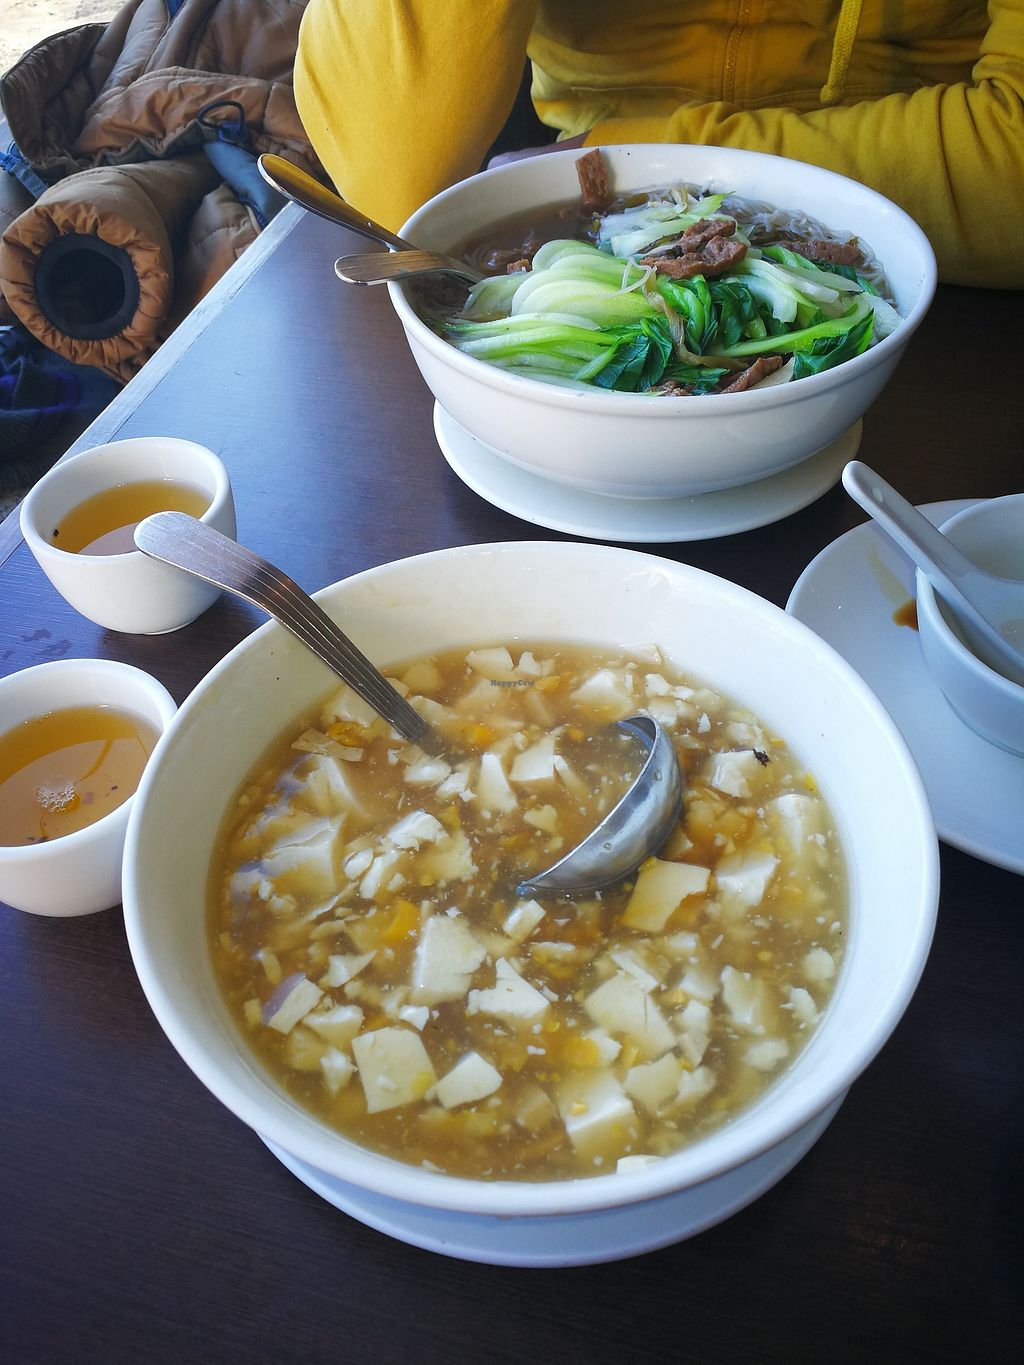 """Photo of Greens Vegetarian Restaurant  by <a href=""""/members/profile/Sharkademus"""">Sharkademus</a> <br/>Medium sized Corn soup with mock chicken(turned out to be just tofu)  <br/> March 4, 2018  - <a href='/contact/abuse/image/24128/366412'>Report</a>"""